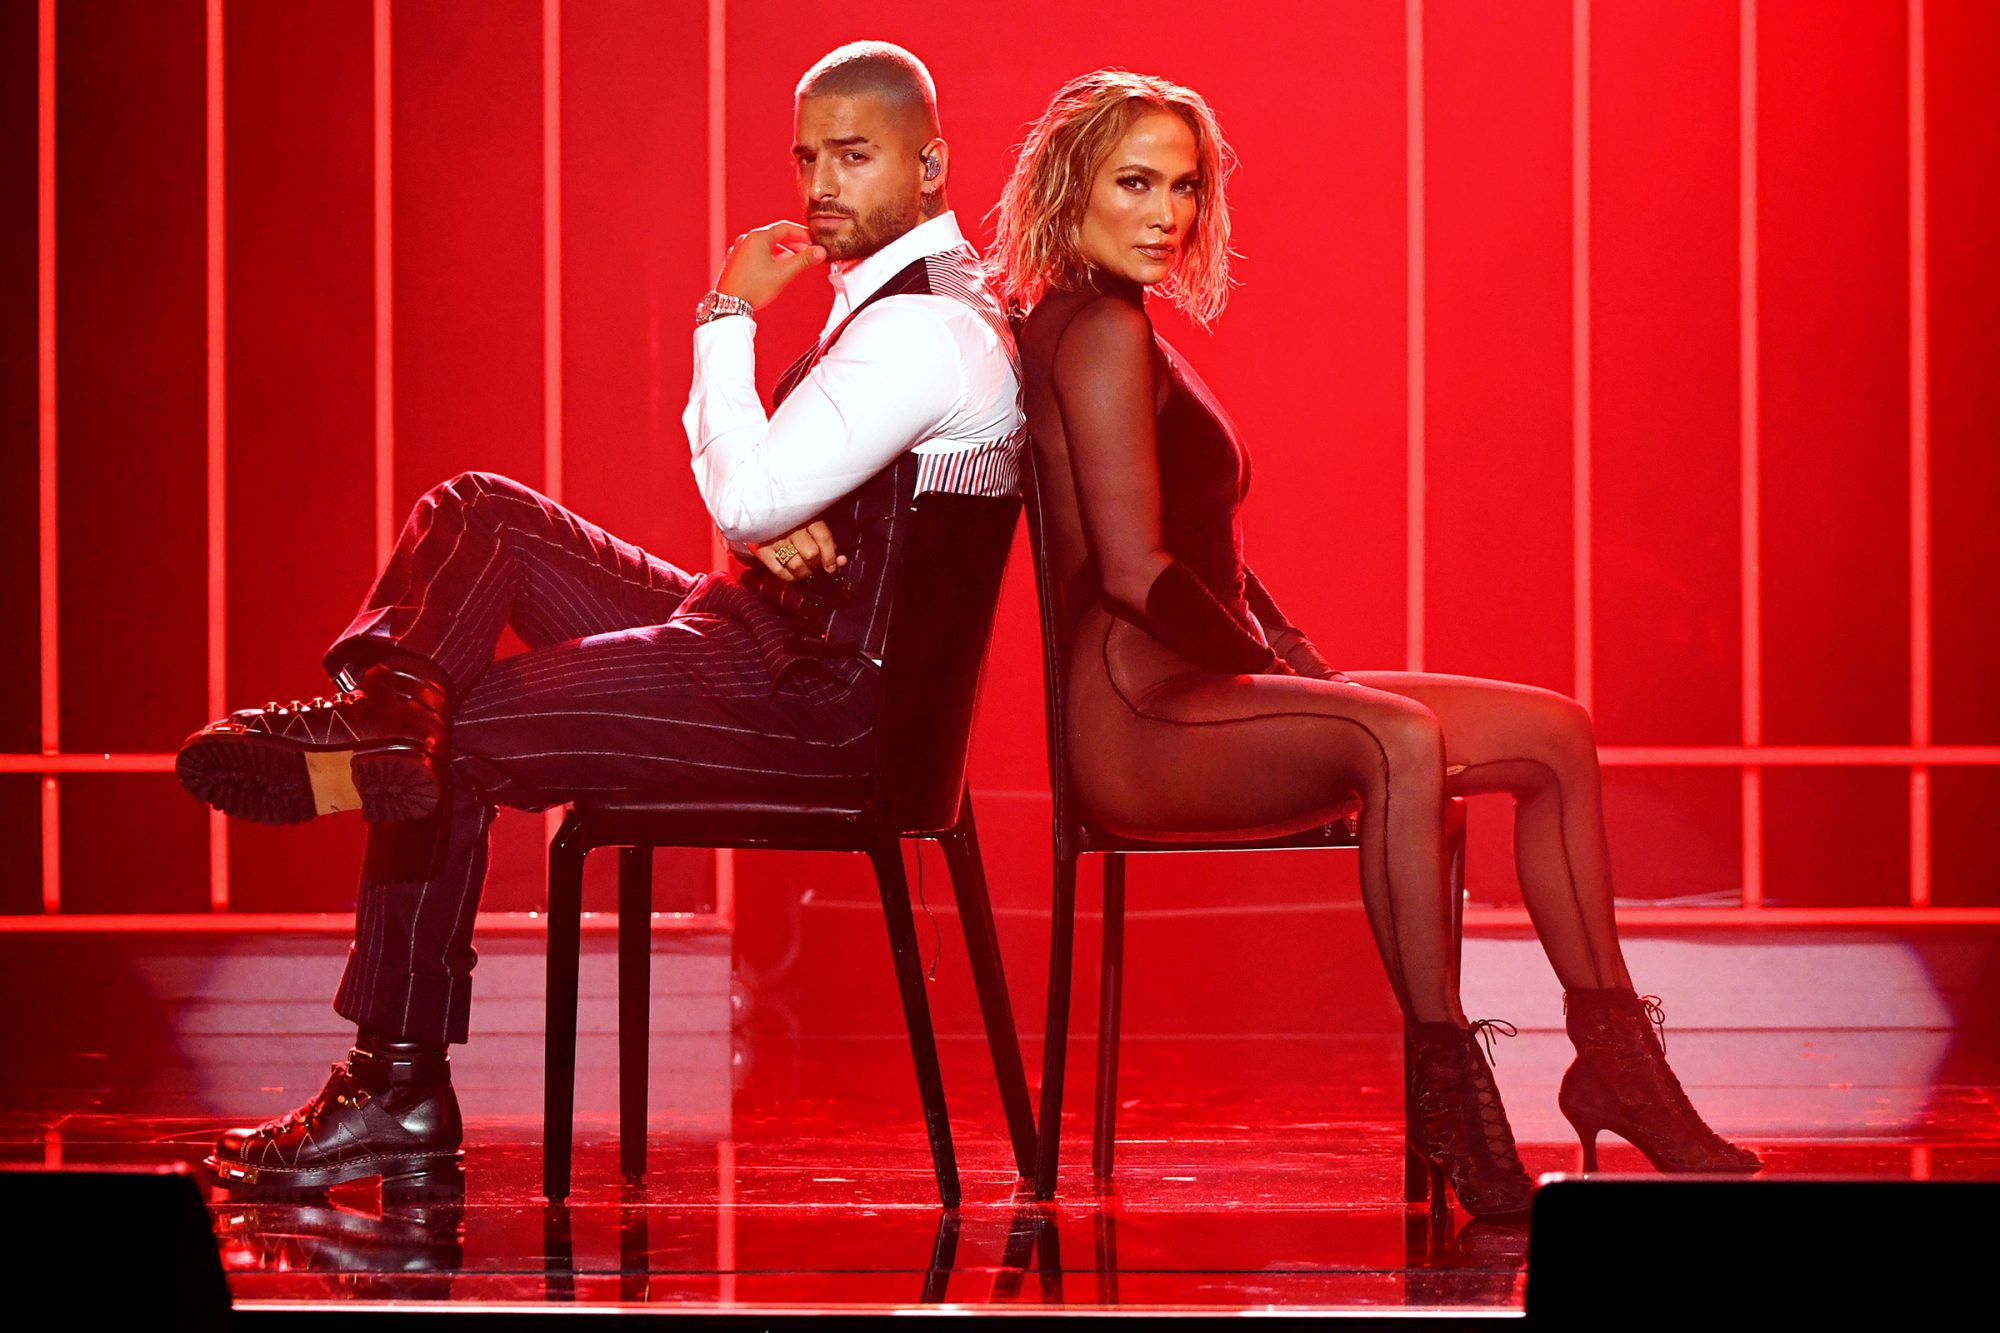 Maluma and Jennifer Lopez perform onstage for the 2020 American Music Awards at Microsoft Theater on November 22, 2020 in Los Angeles, California